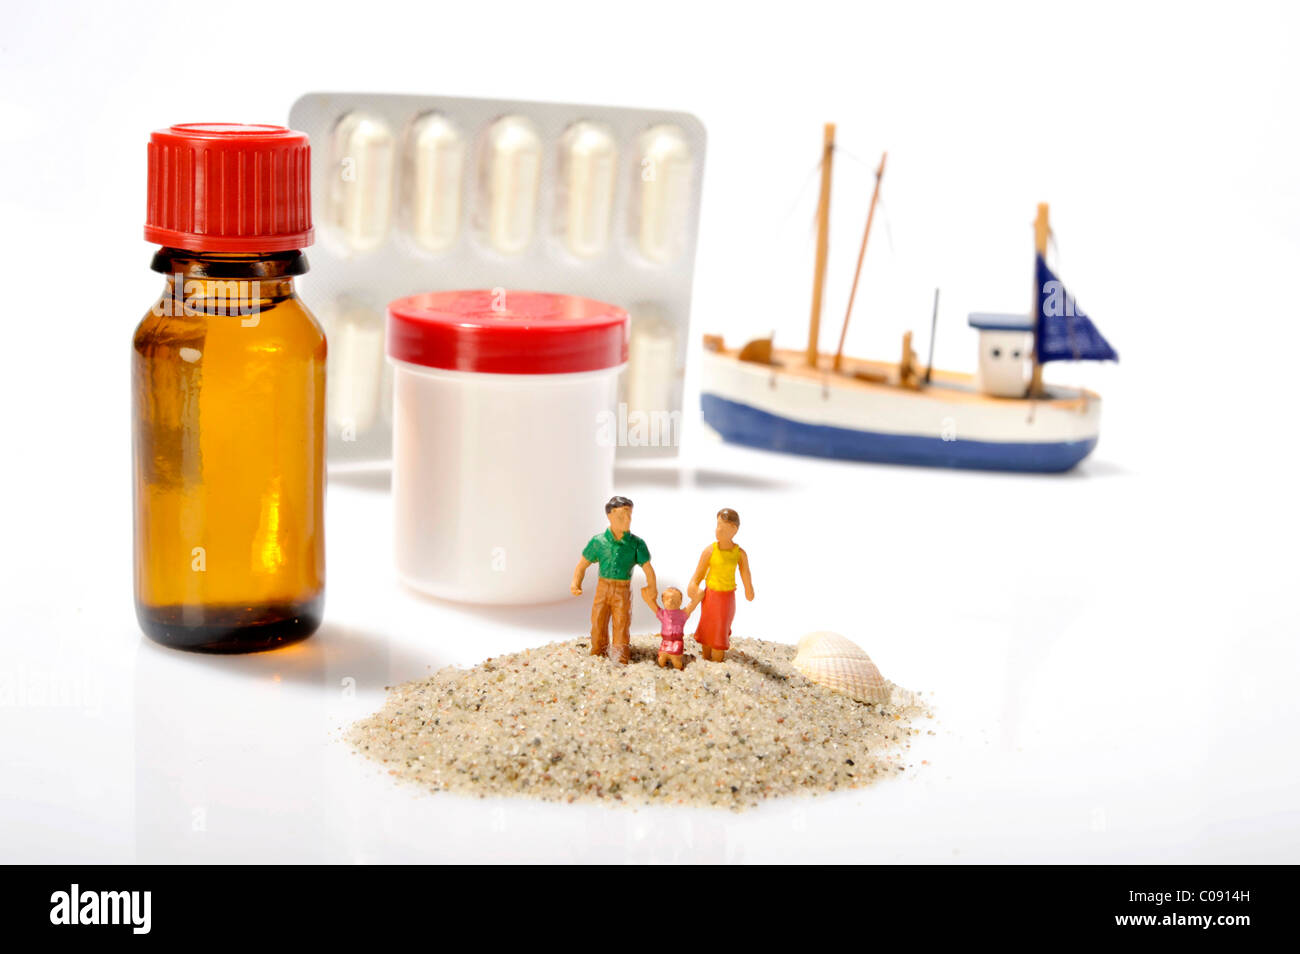 Family figurines in sand in front of medicaments from a first aid kit, symbolic image - Stock Image